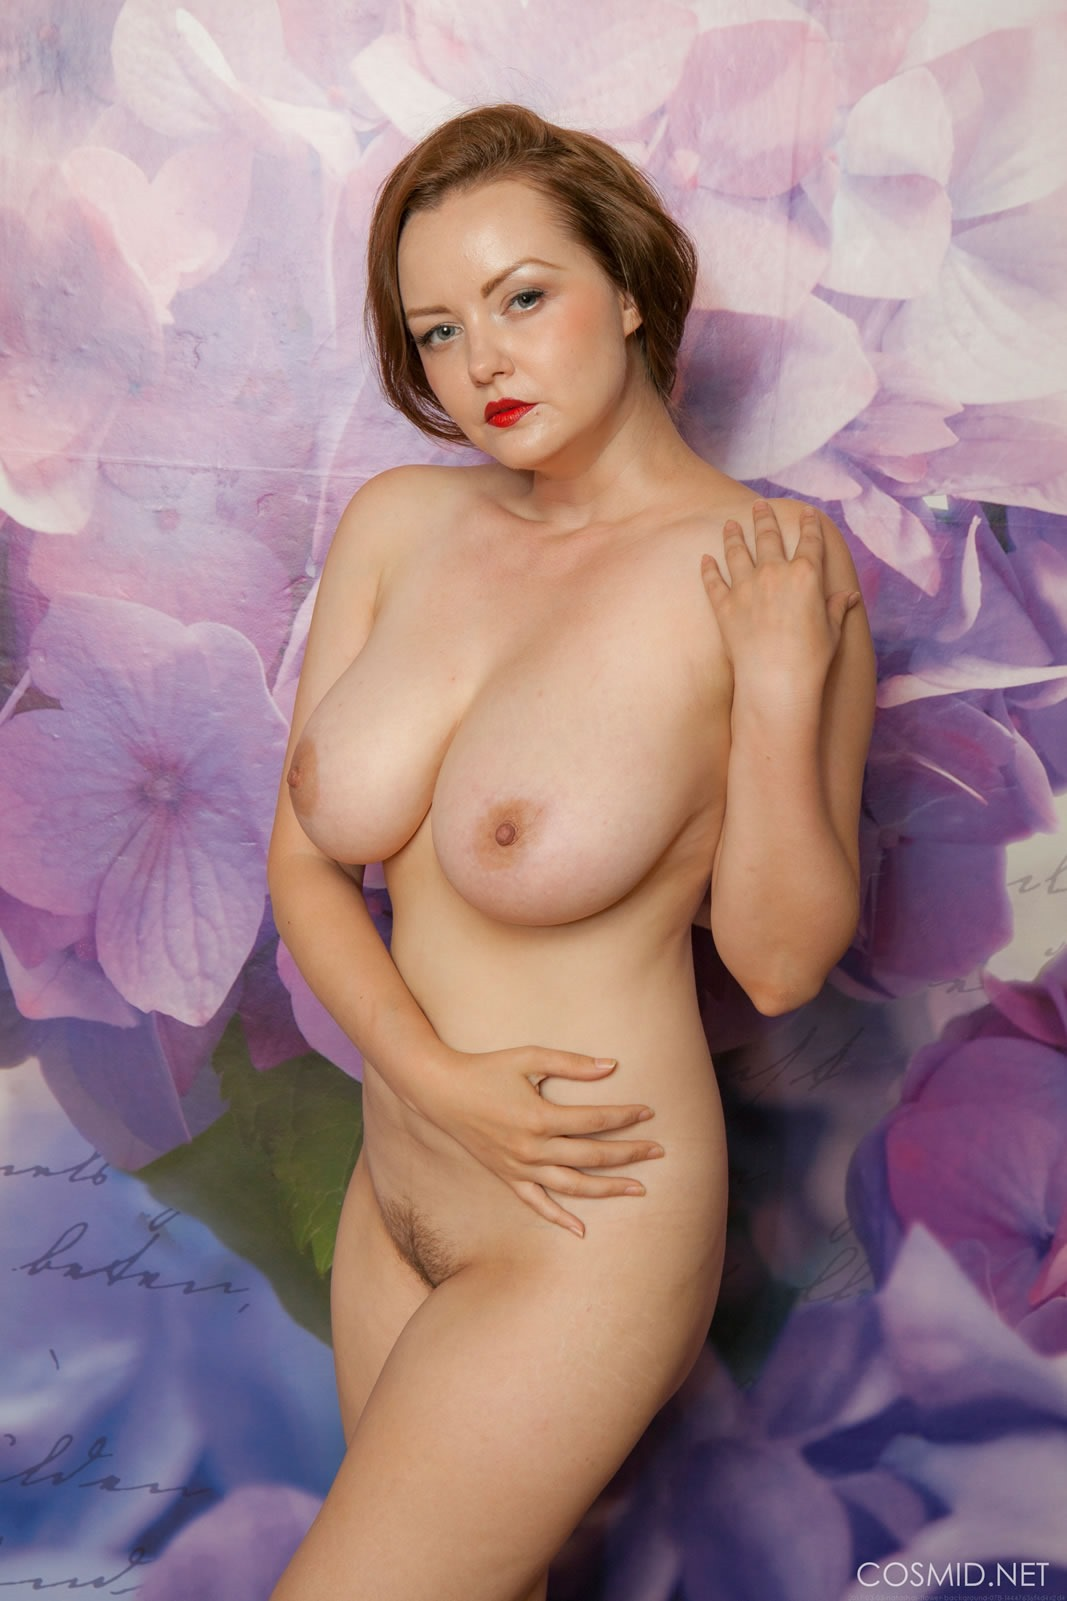 Magnificent Gorgeous redhead nude something is